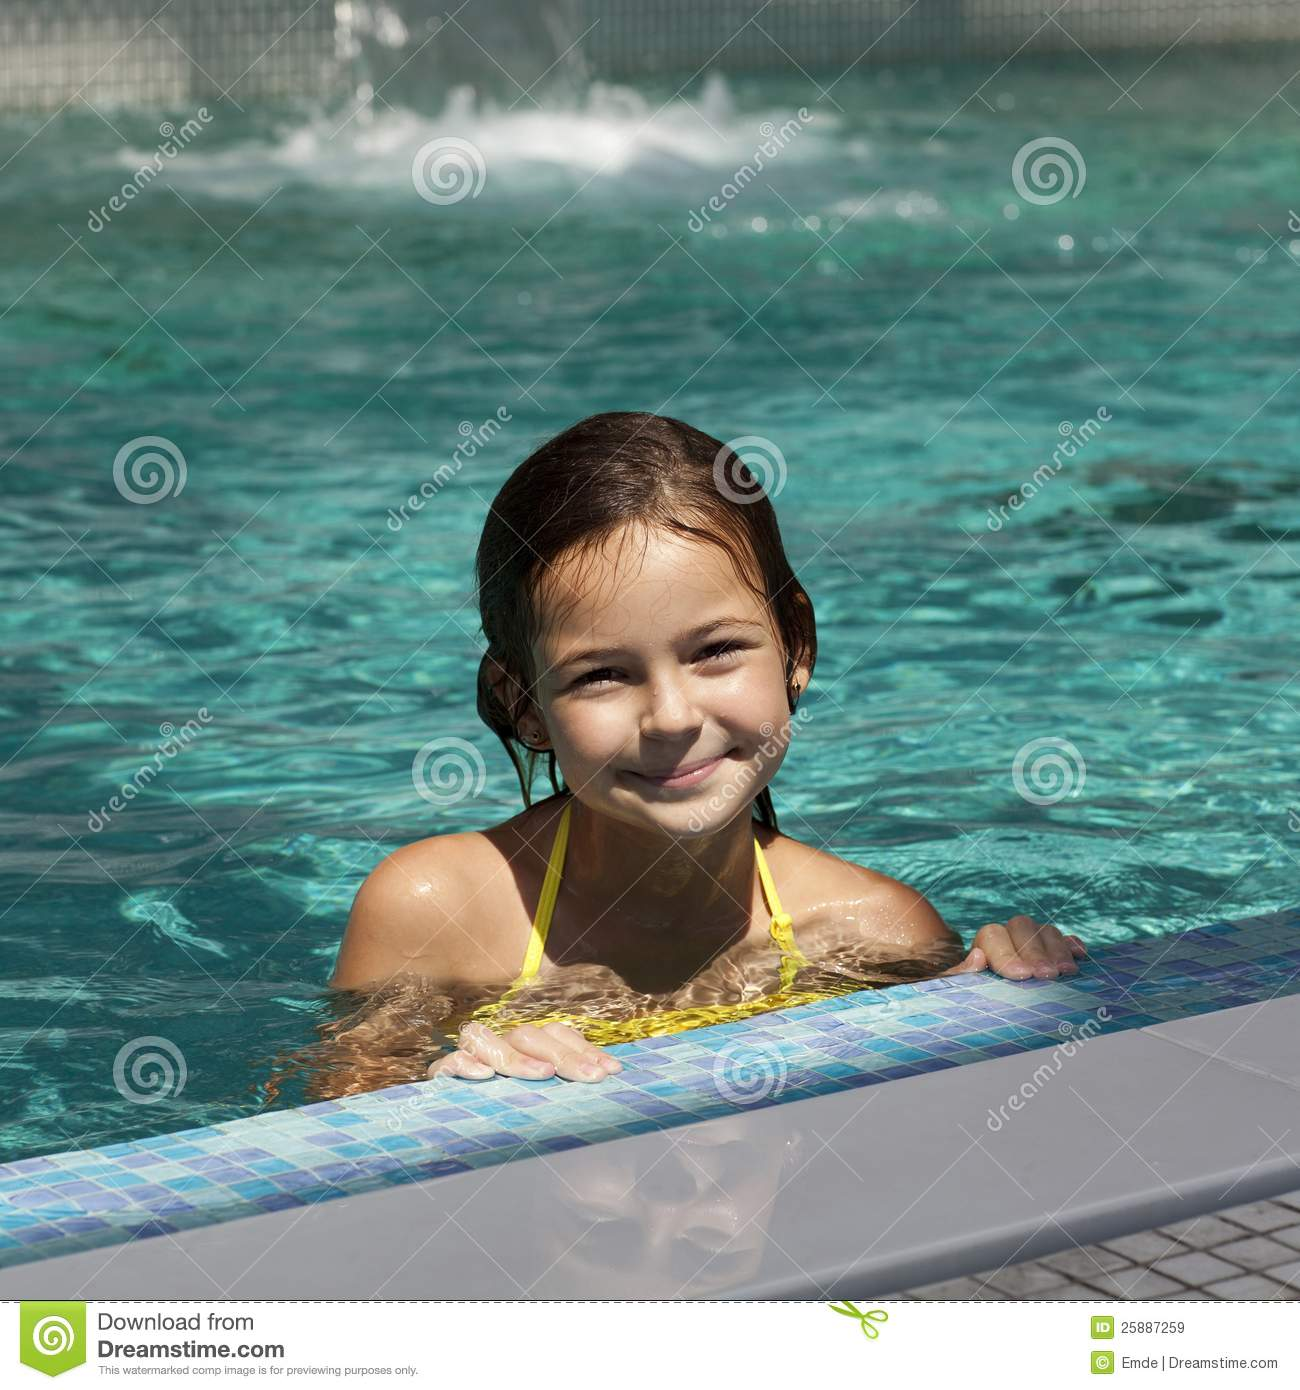 Girl Child In Blue Water Of The Swimming Pool Royalty Free Stock Images Image 25887259